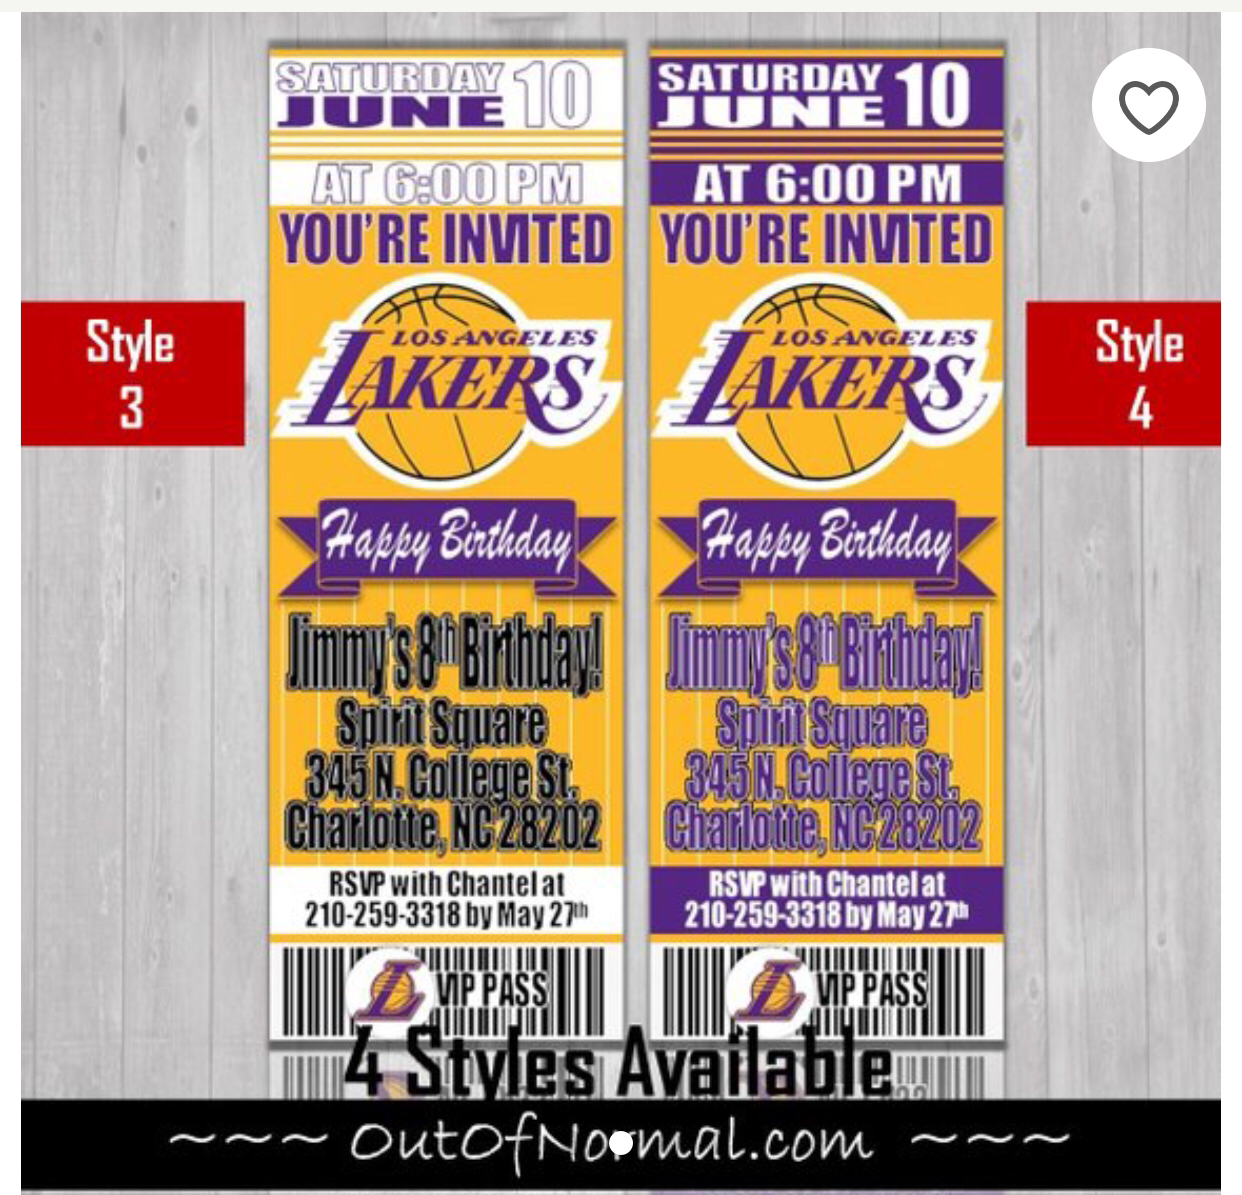 Los Angeles Lakers Basketball Ticket Style Invitation Ticket Style Invitations Baseball Birthday Invitations Basketball Birthday Invitations